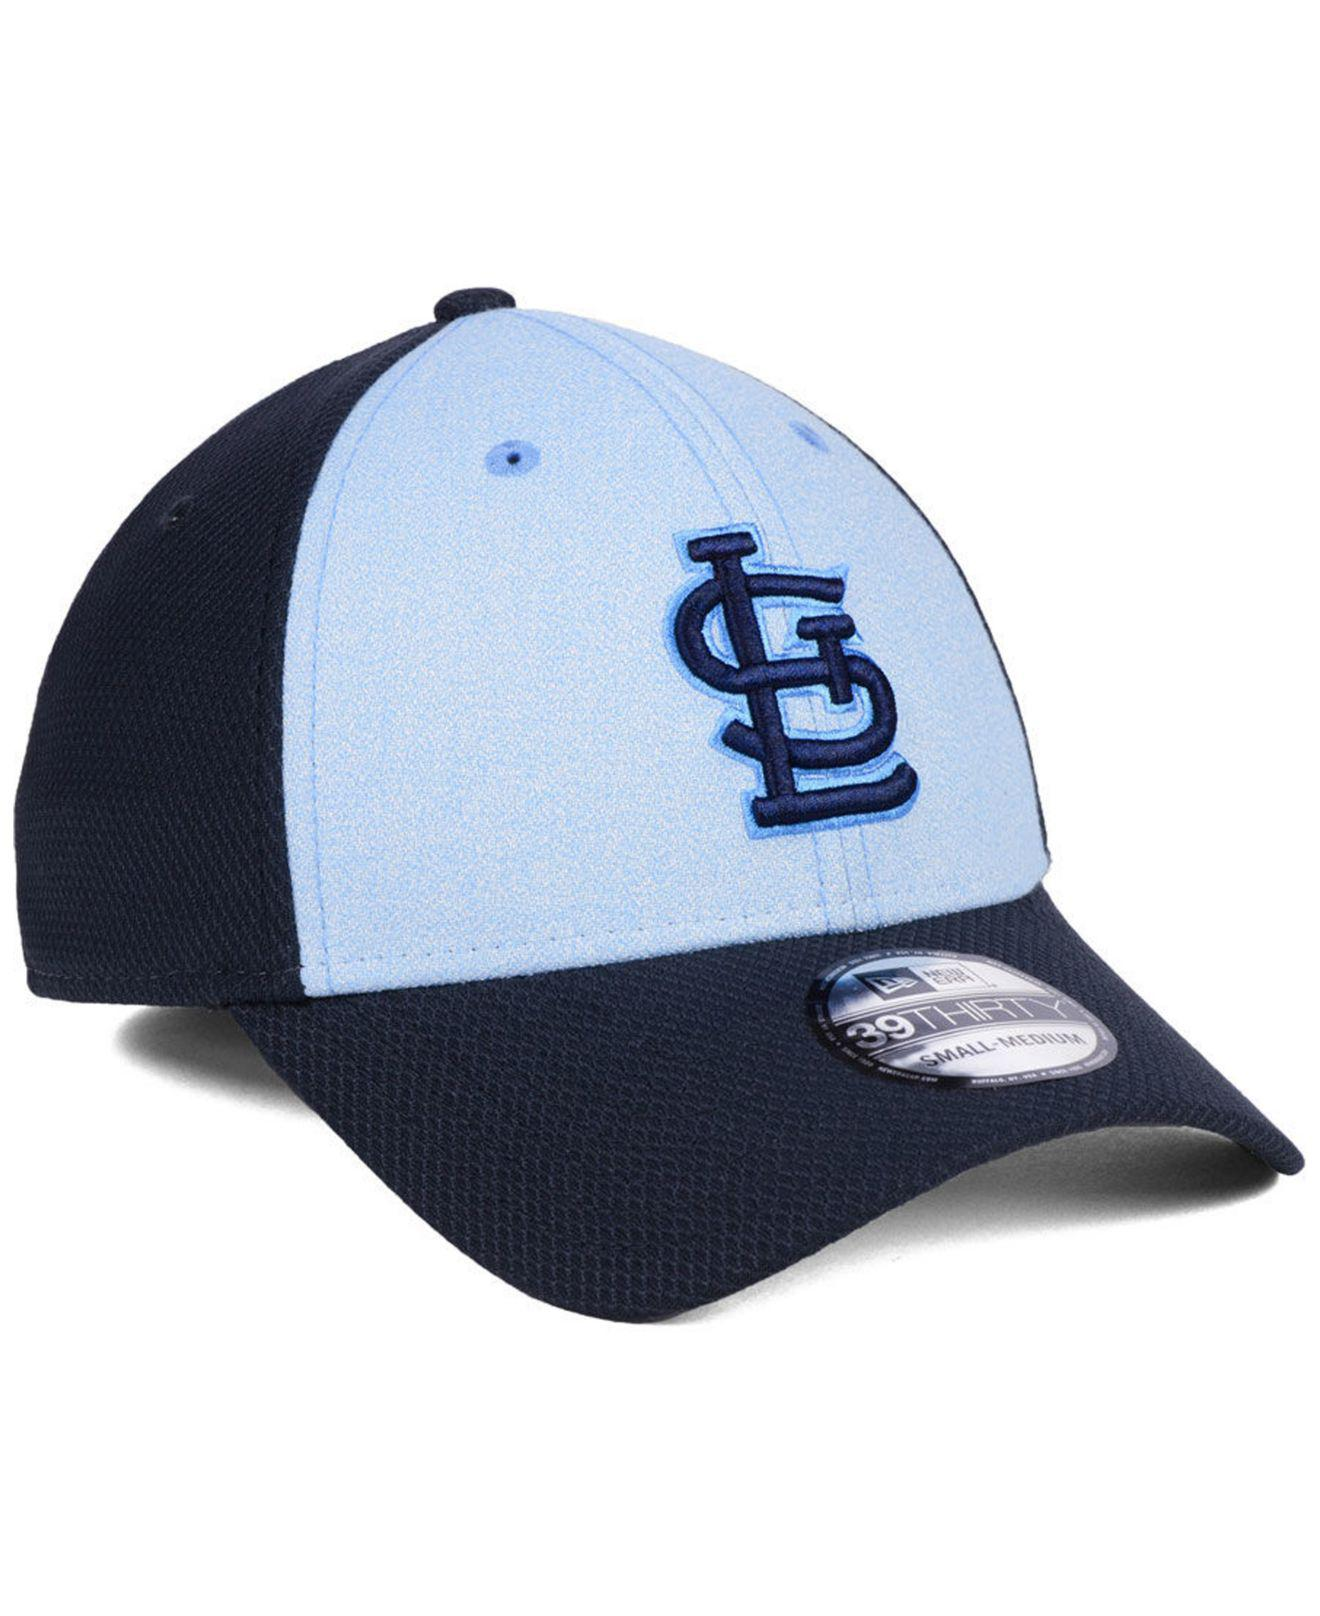 newest b99f4 0781a ... get lyst ktz st. louis cardinals fathers day 39thirty cap 2018 in 85f2b  64573